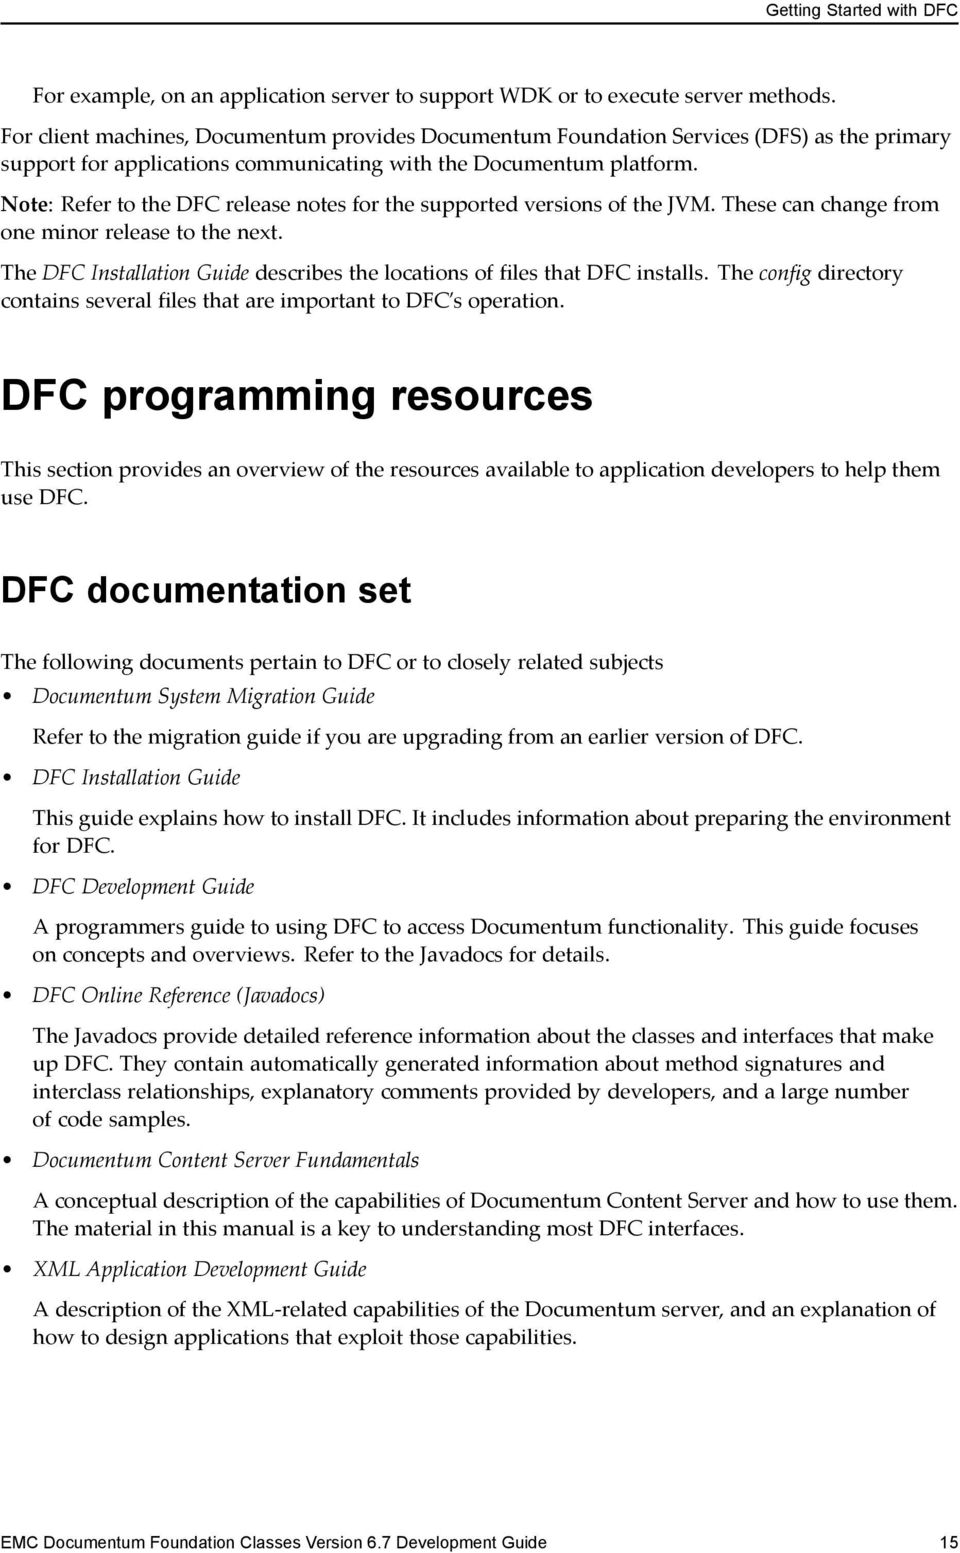 Note: Refer to the DFC release notes for the supported versions of the JVM. These can change from one minor release to the next.